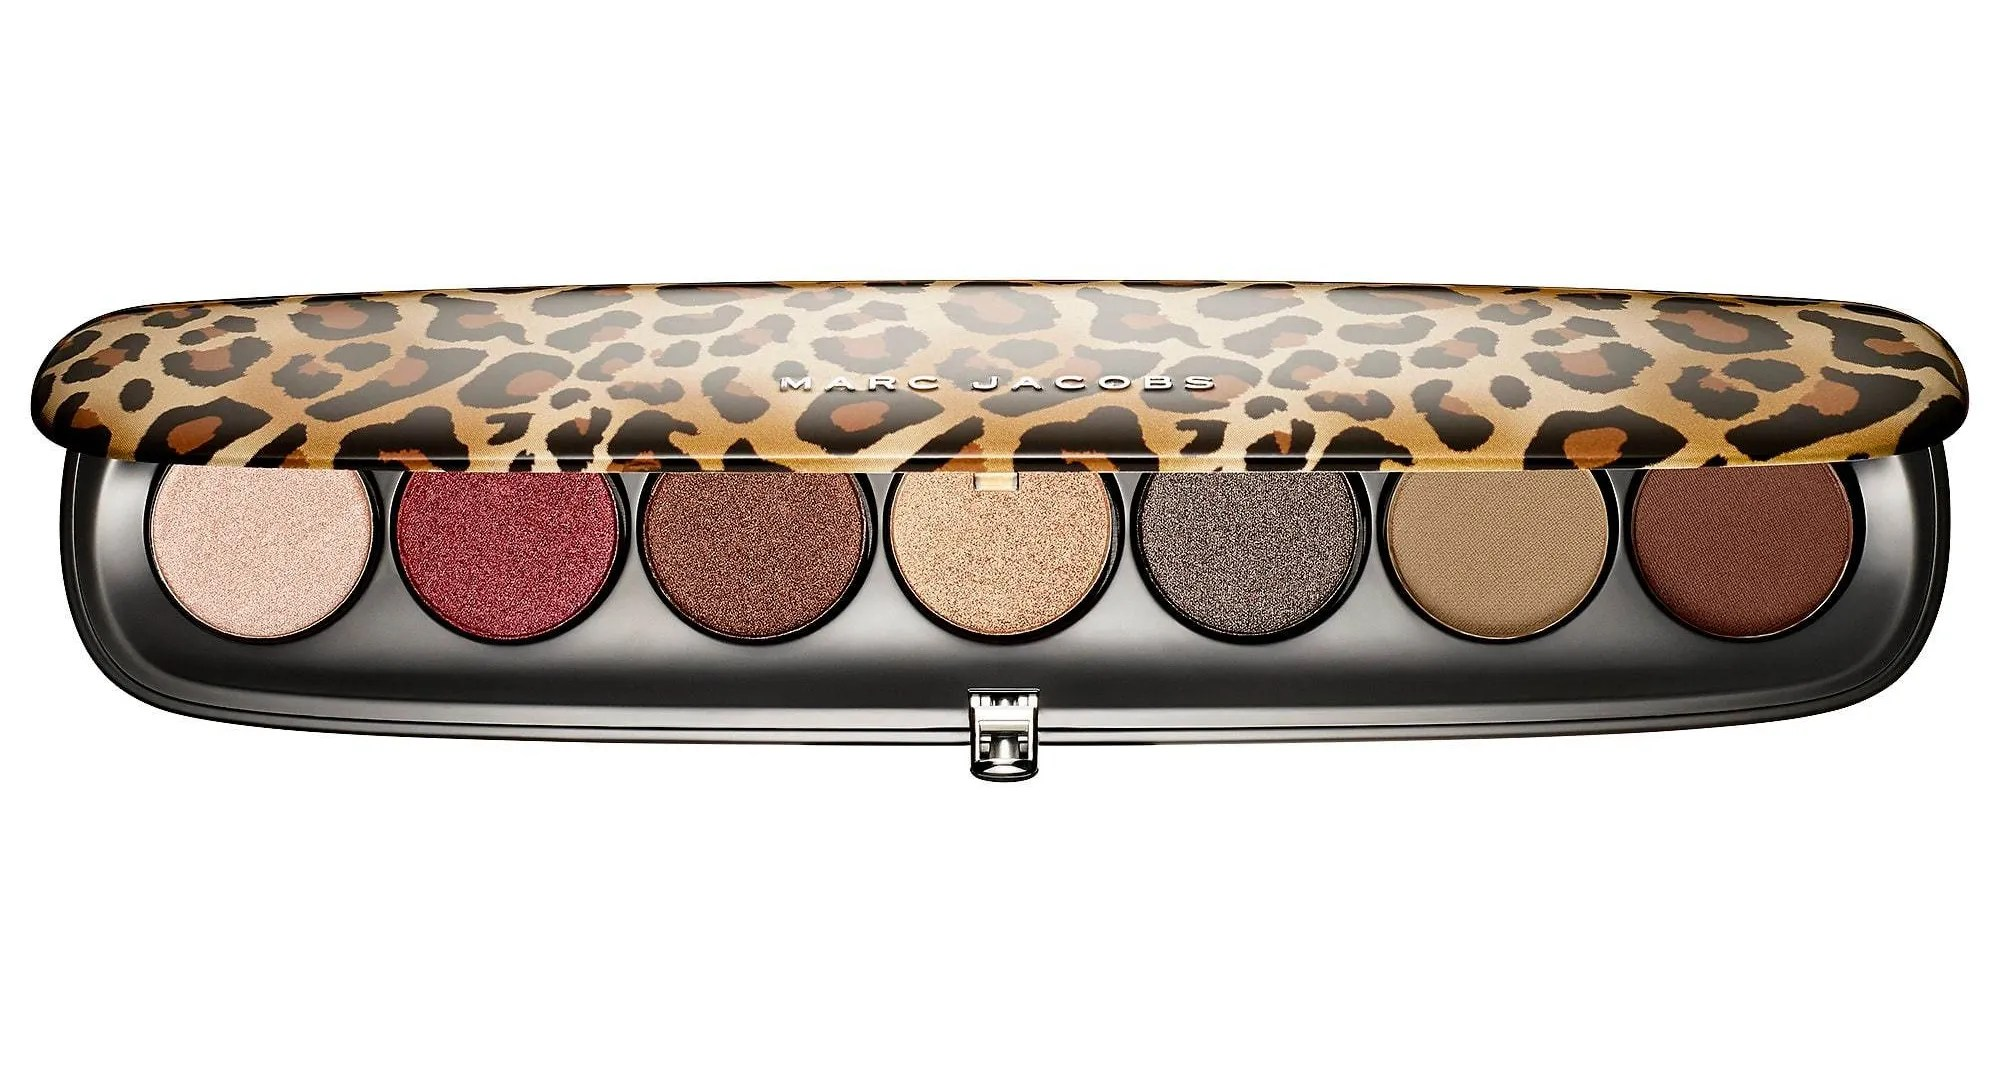 Marc Jacobs Eye-Conic Frost Palette